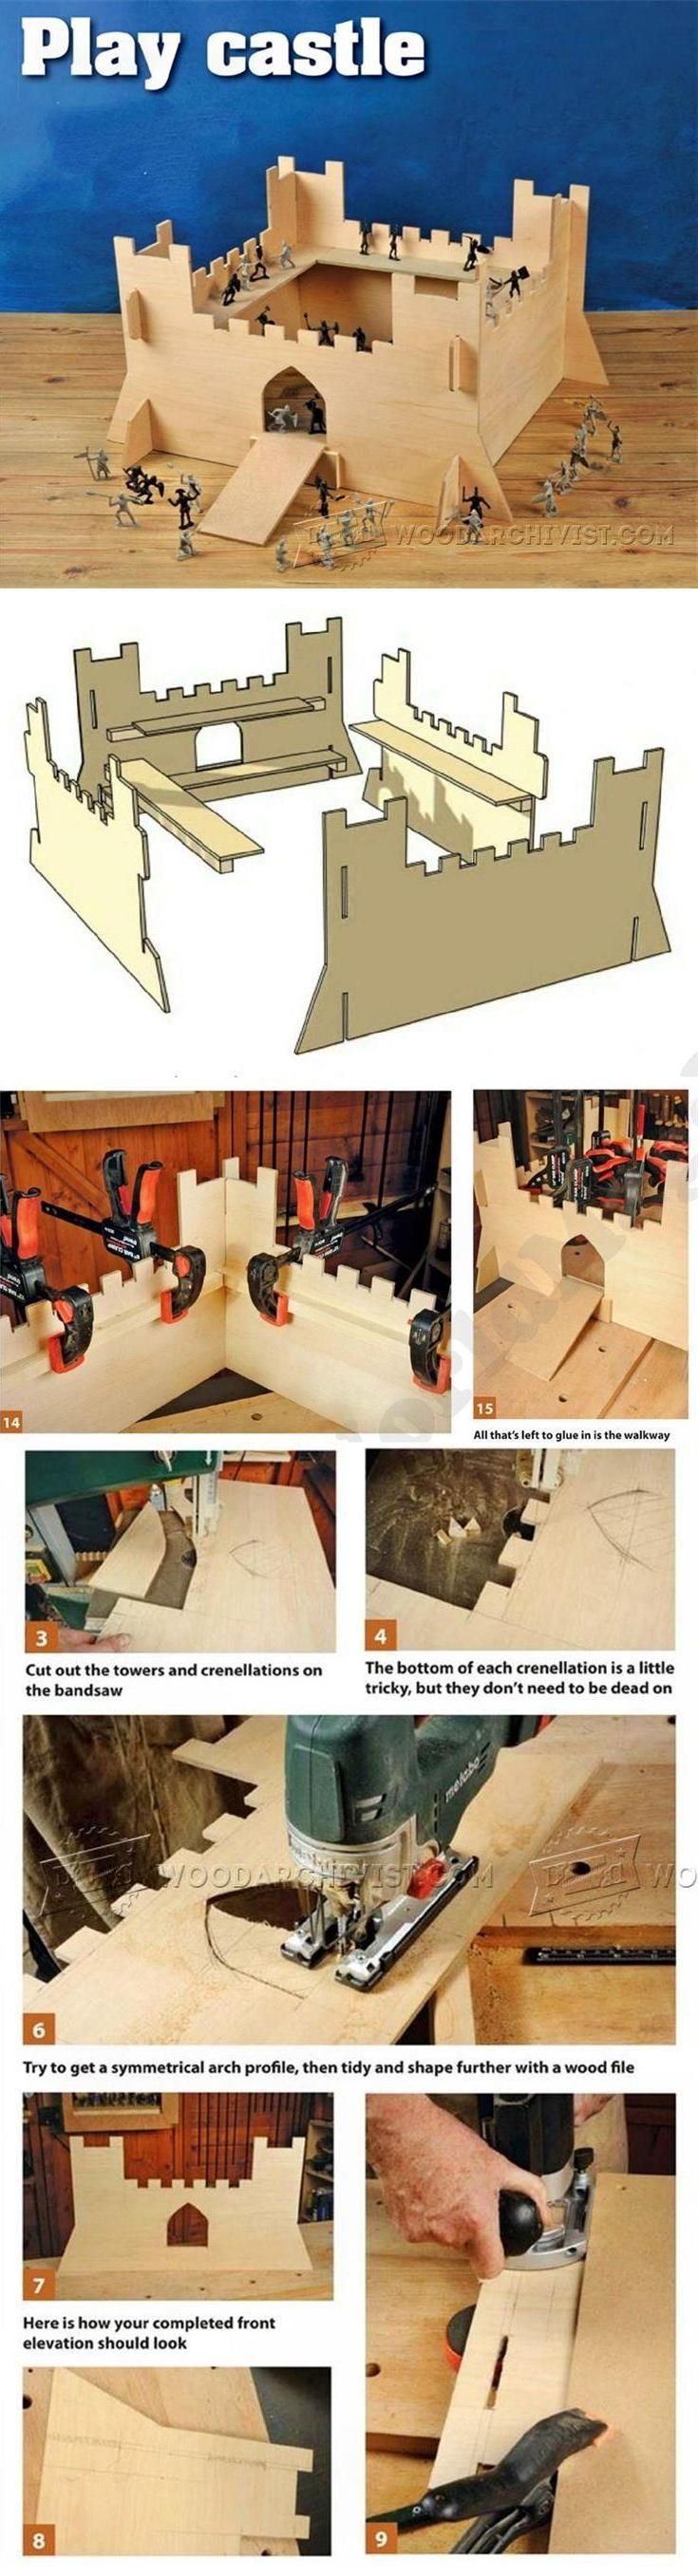 Play Castle Plans - Children's Wooden Toy Plans and Projects | WoodArchivist.com